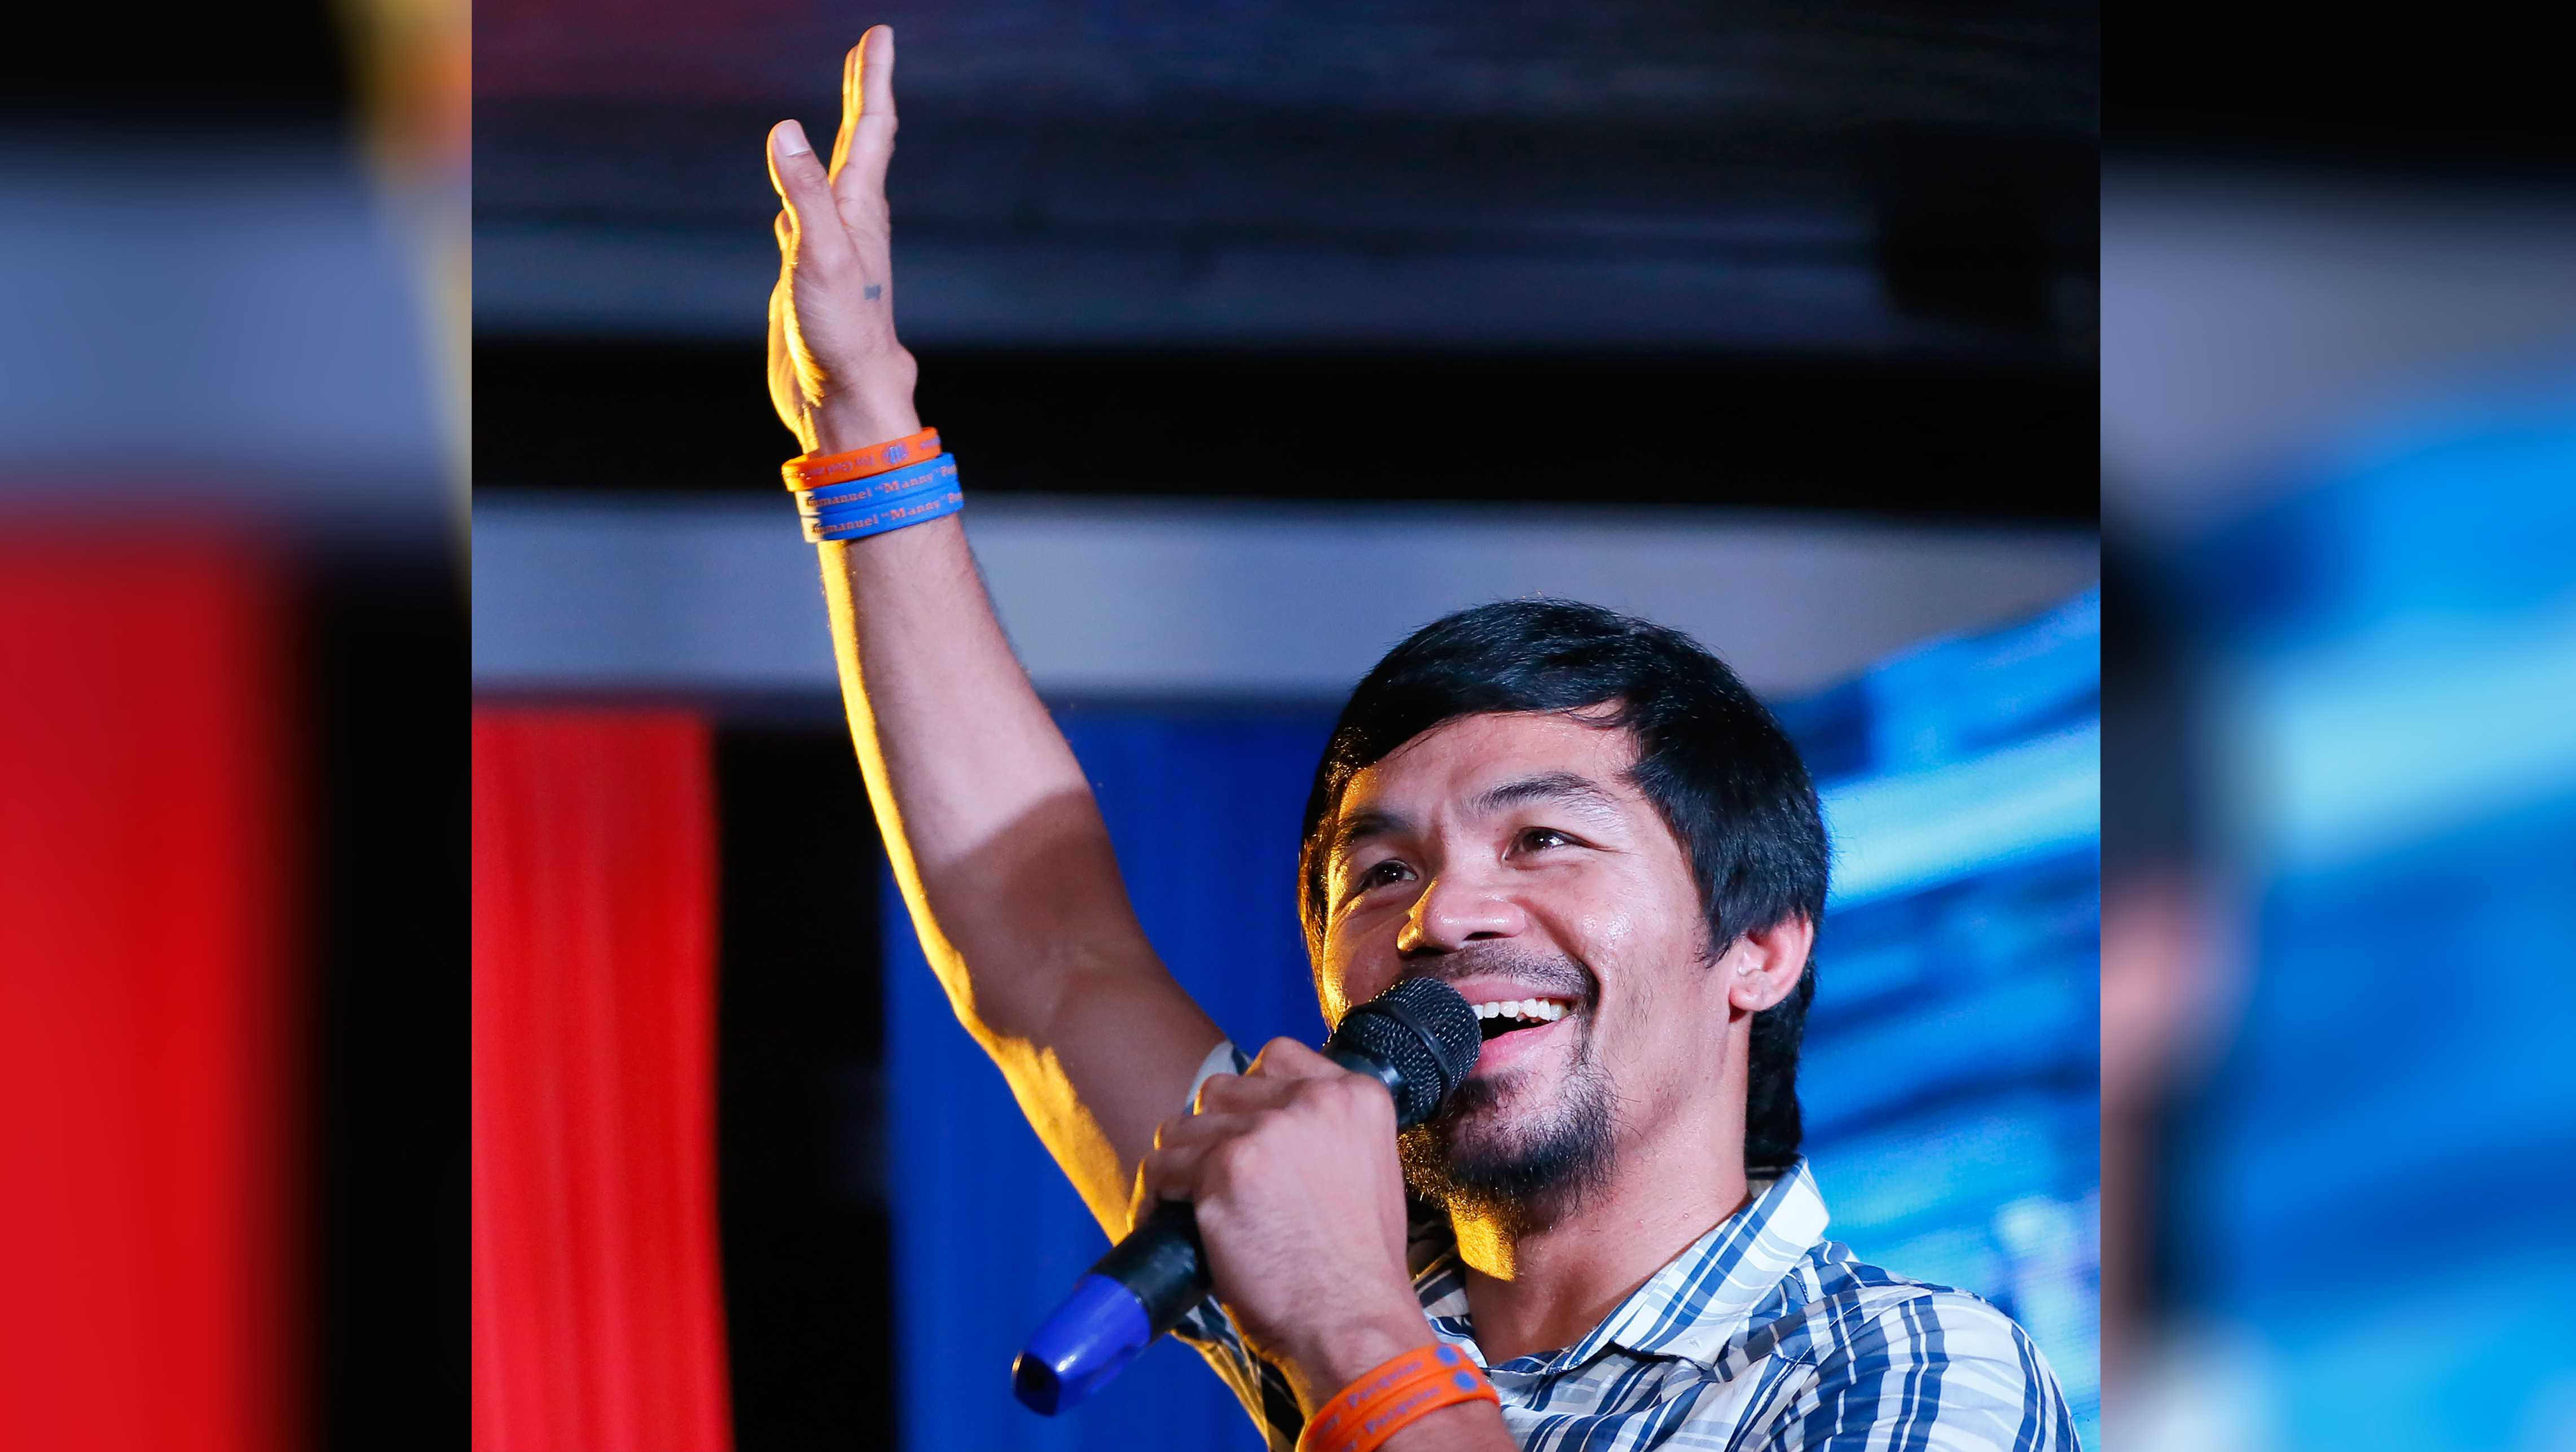 In this April 28, 2016, file photo, boxing star Manny Pacquiao addresses supporters as he campaigns for a seat in the Philippine Senate in San Pablo city, Laguna province, Philippines. Pacquiao was concentrating on trying to get the death penalty restored in the Philippines. Now he's focusing on something not nearly as controversial -- his return to the ring for a Nov. 5 fight with Jesse Vargas.